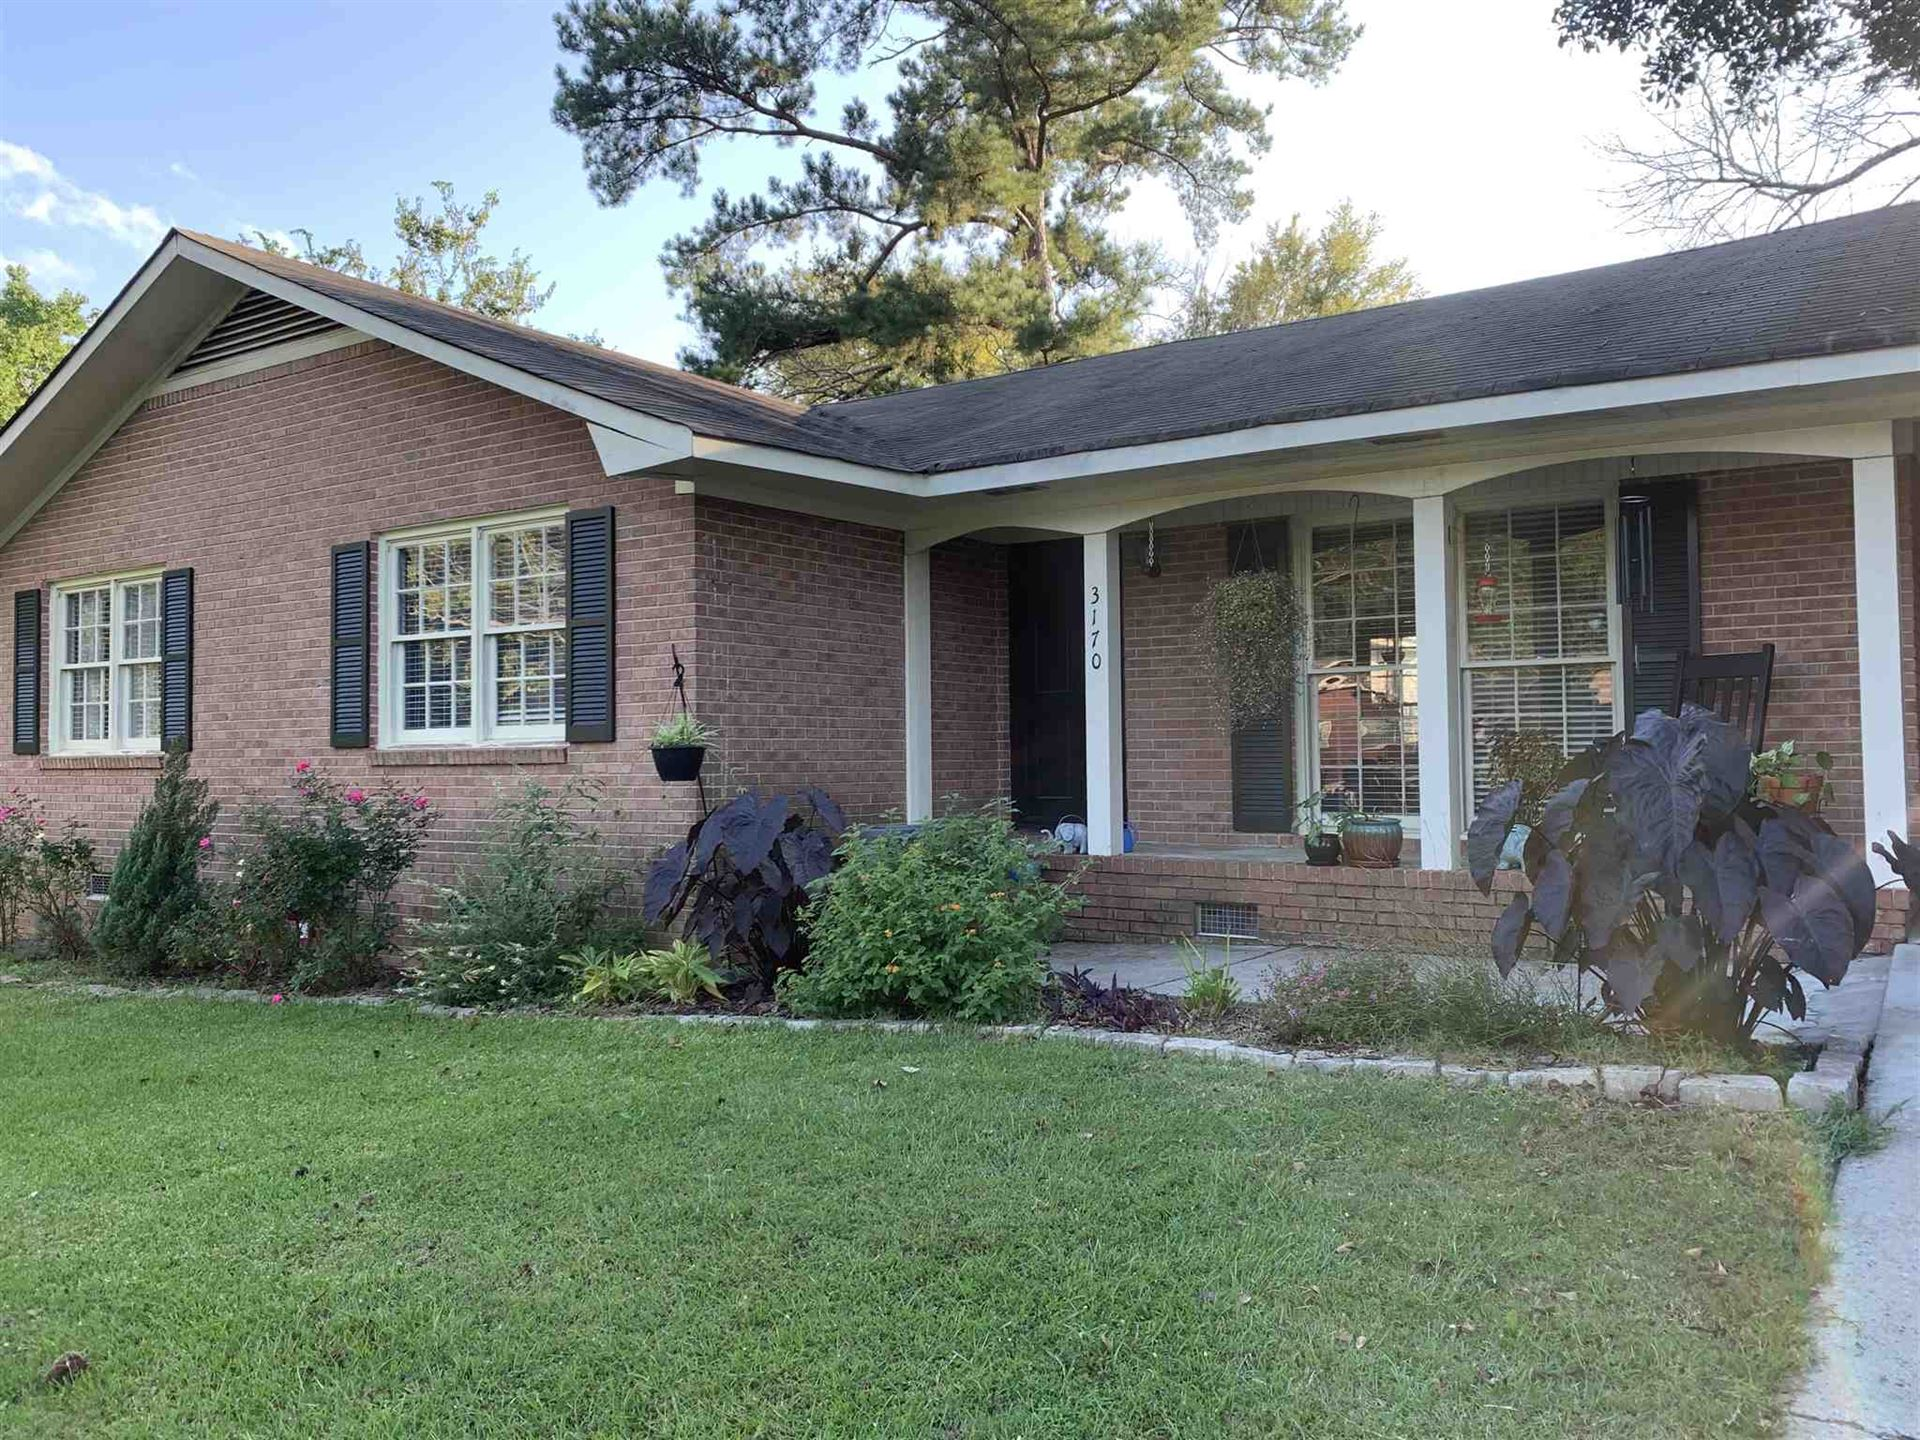 3170 Willowdale Dr, Macon, GA 31204 - MLS#: 8878274